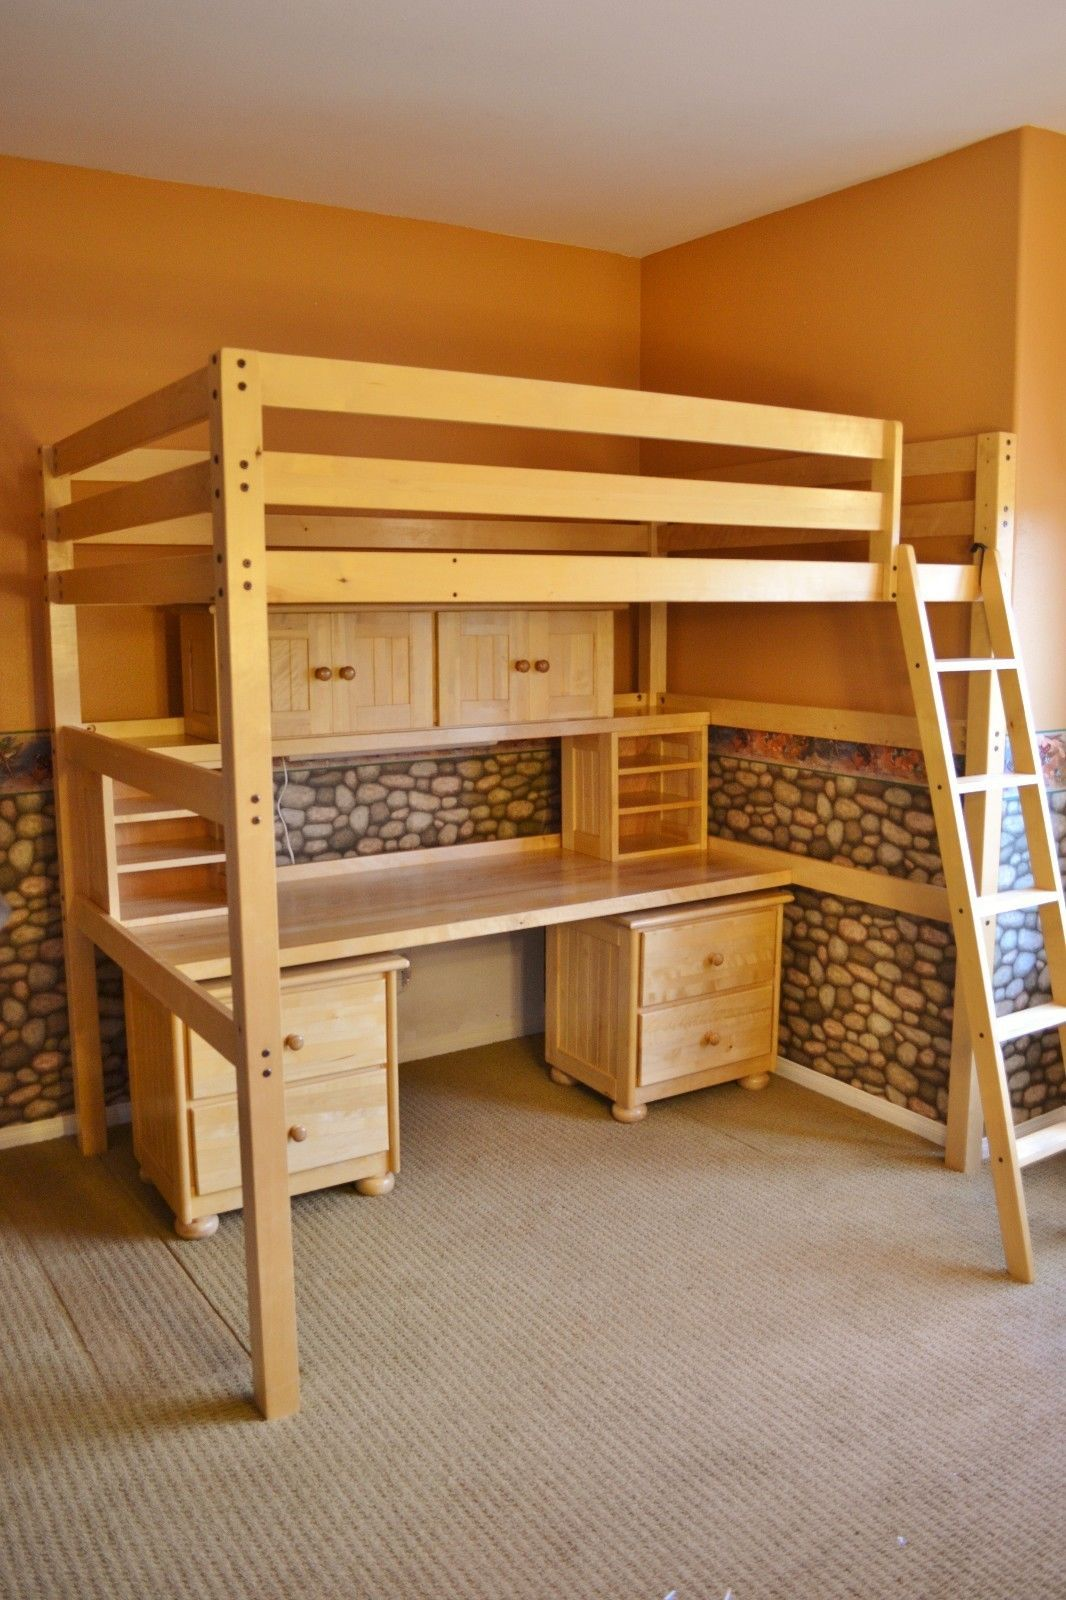 Children's Student FullSized Loft Bed and Desk System